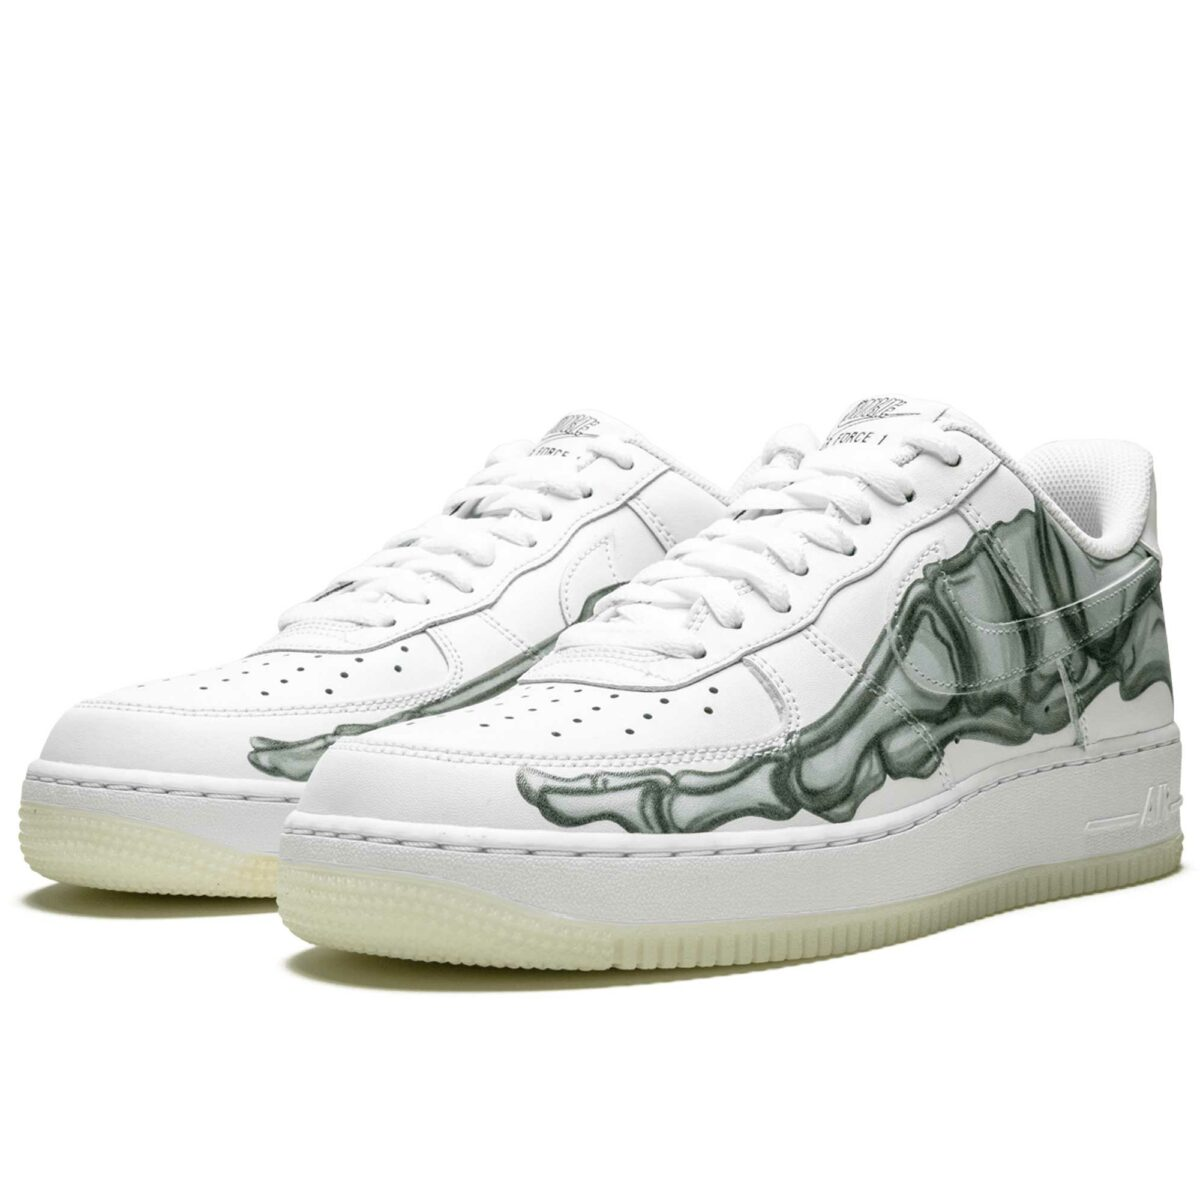 nike air force 1 07 skeleton QS white BQ07541_100 купить